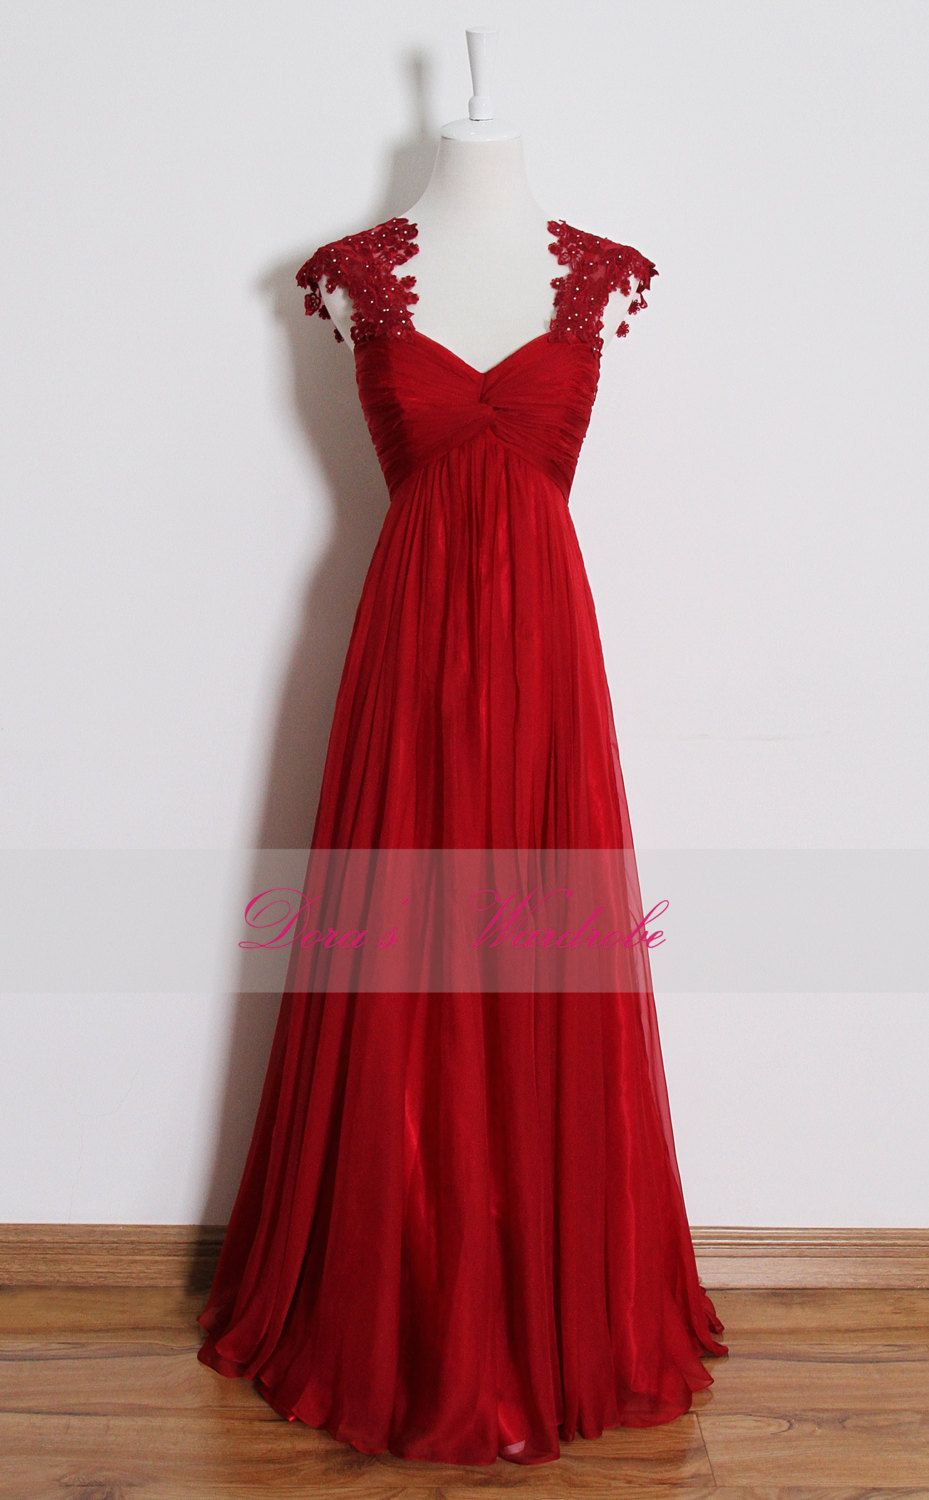 Red+lace+prom+dresslong+empire+waist+bridesmaid+by+DorasWardrobe